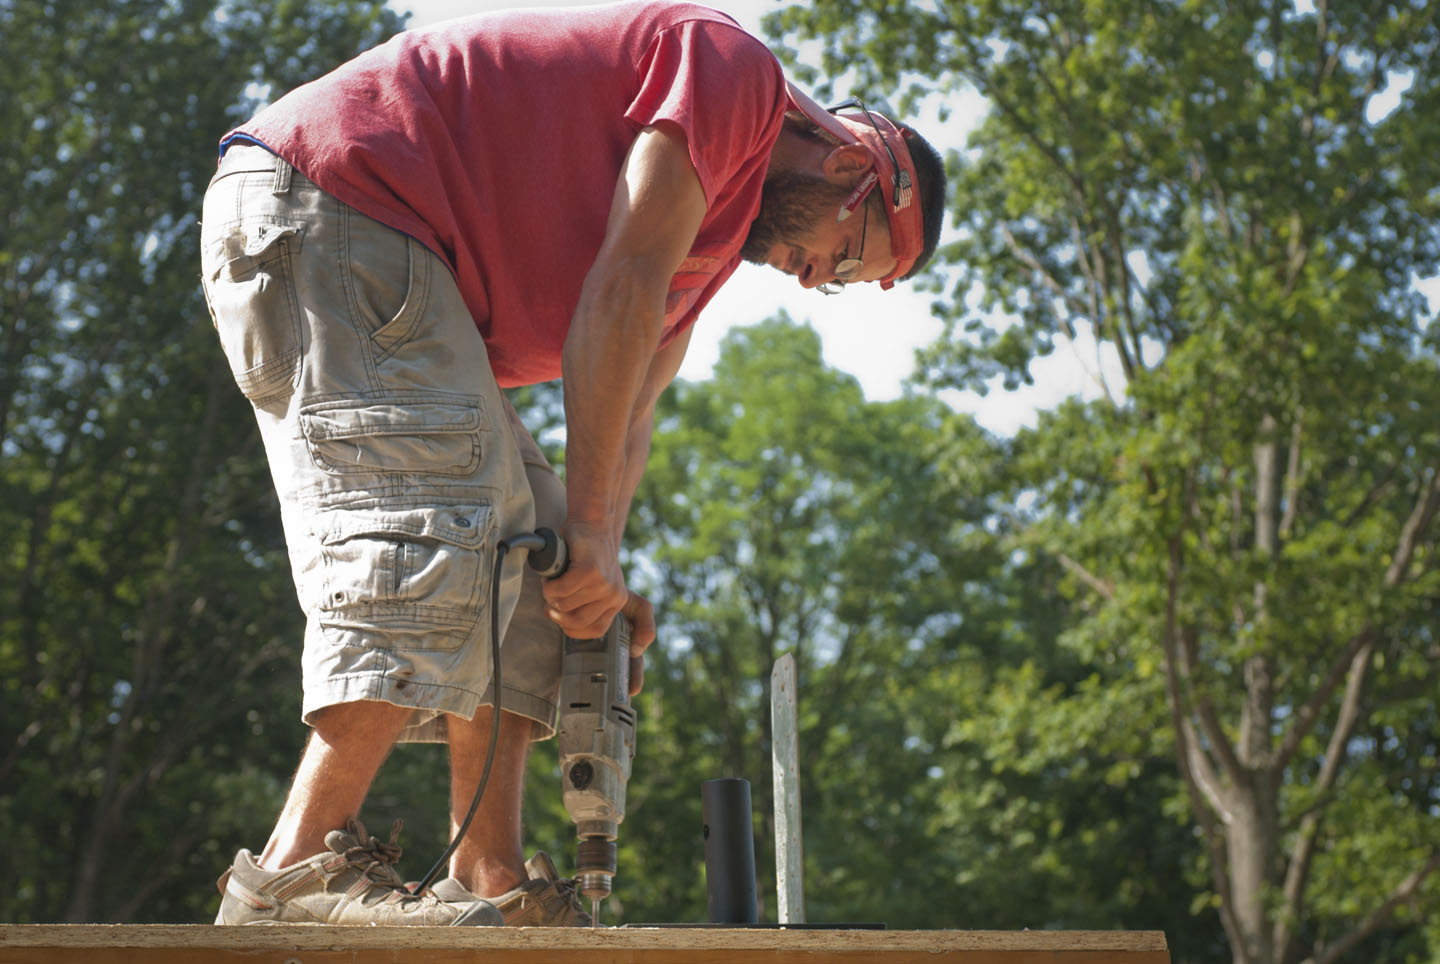 Attaching glulam base plates to the deck | New Hudson Valley